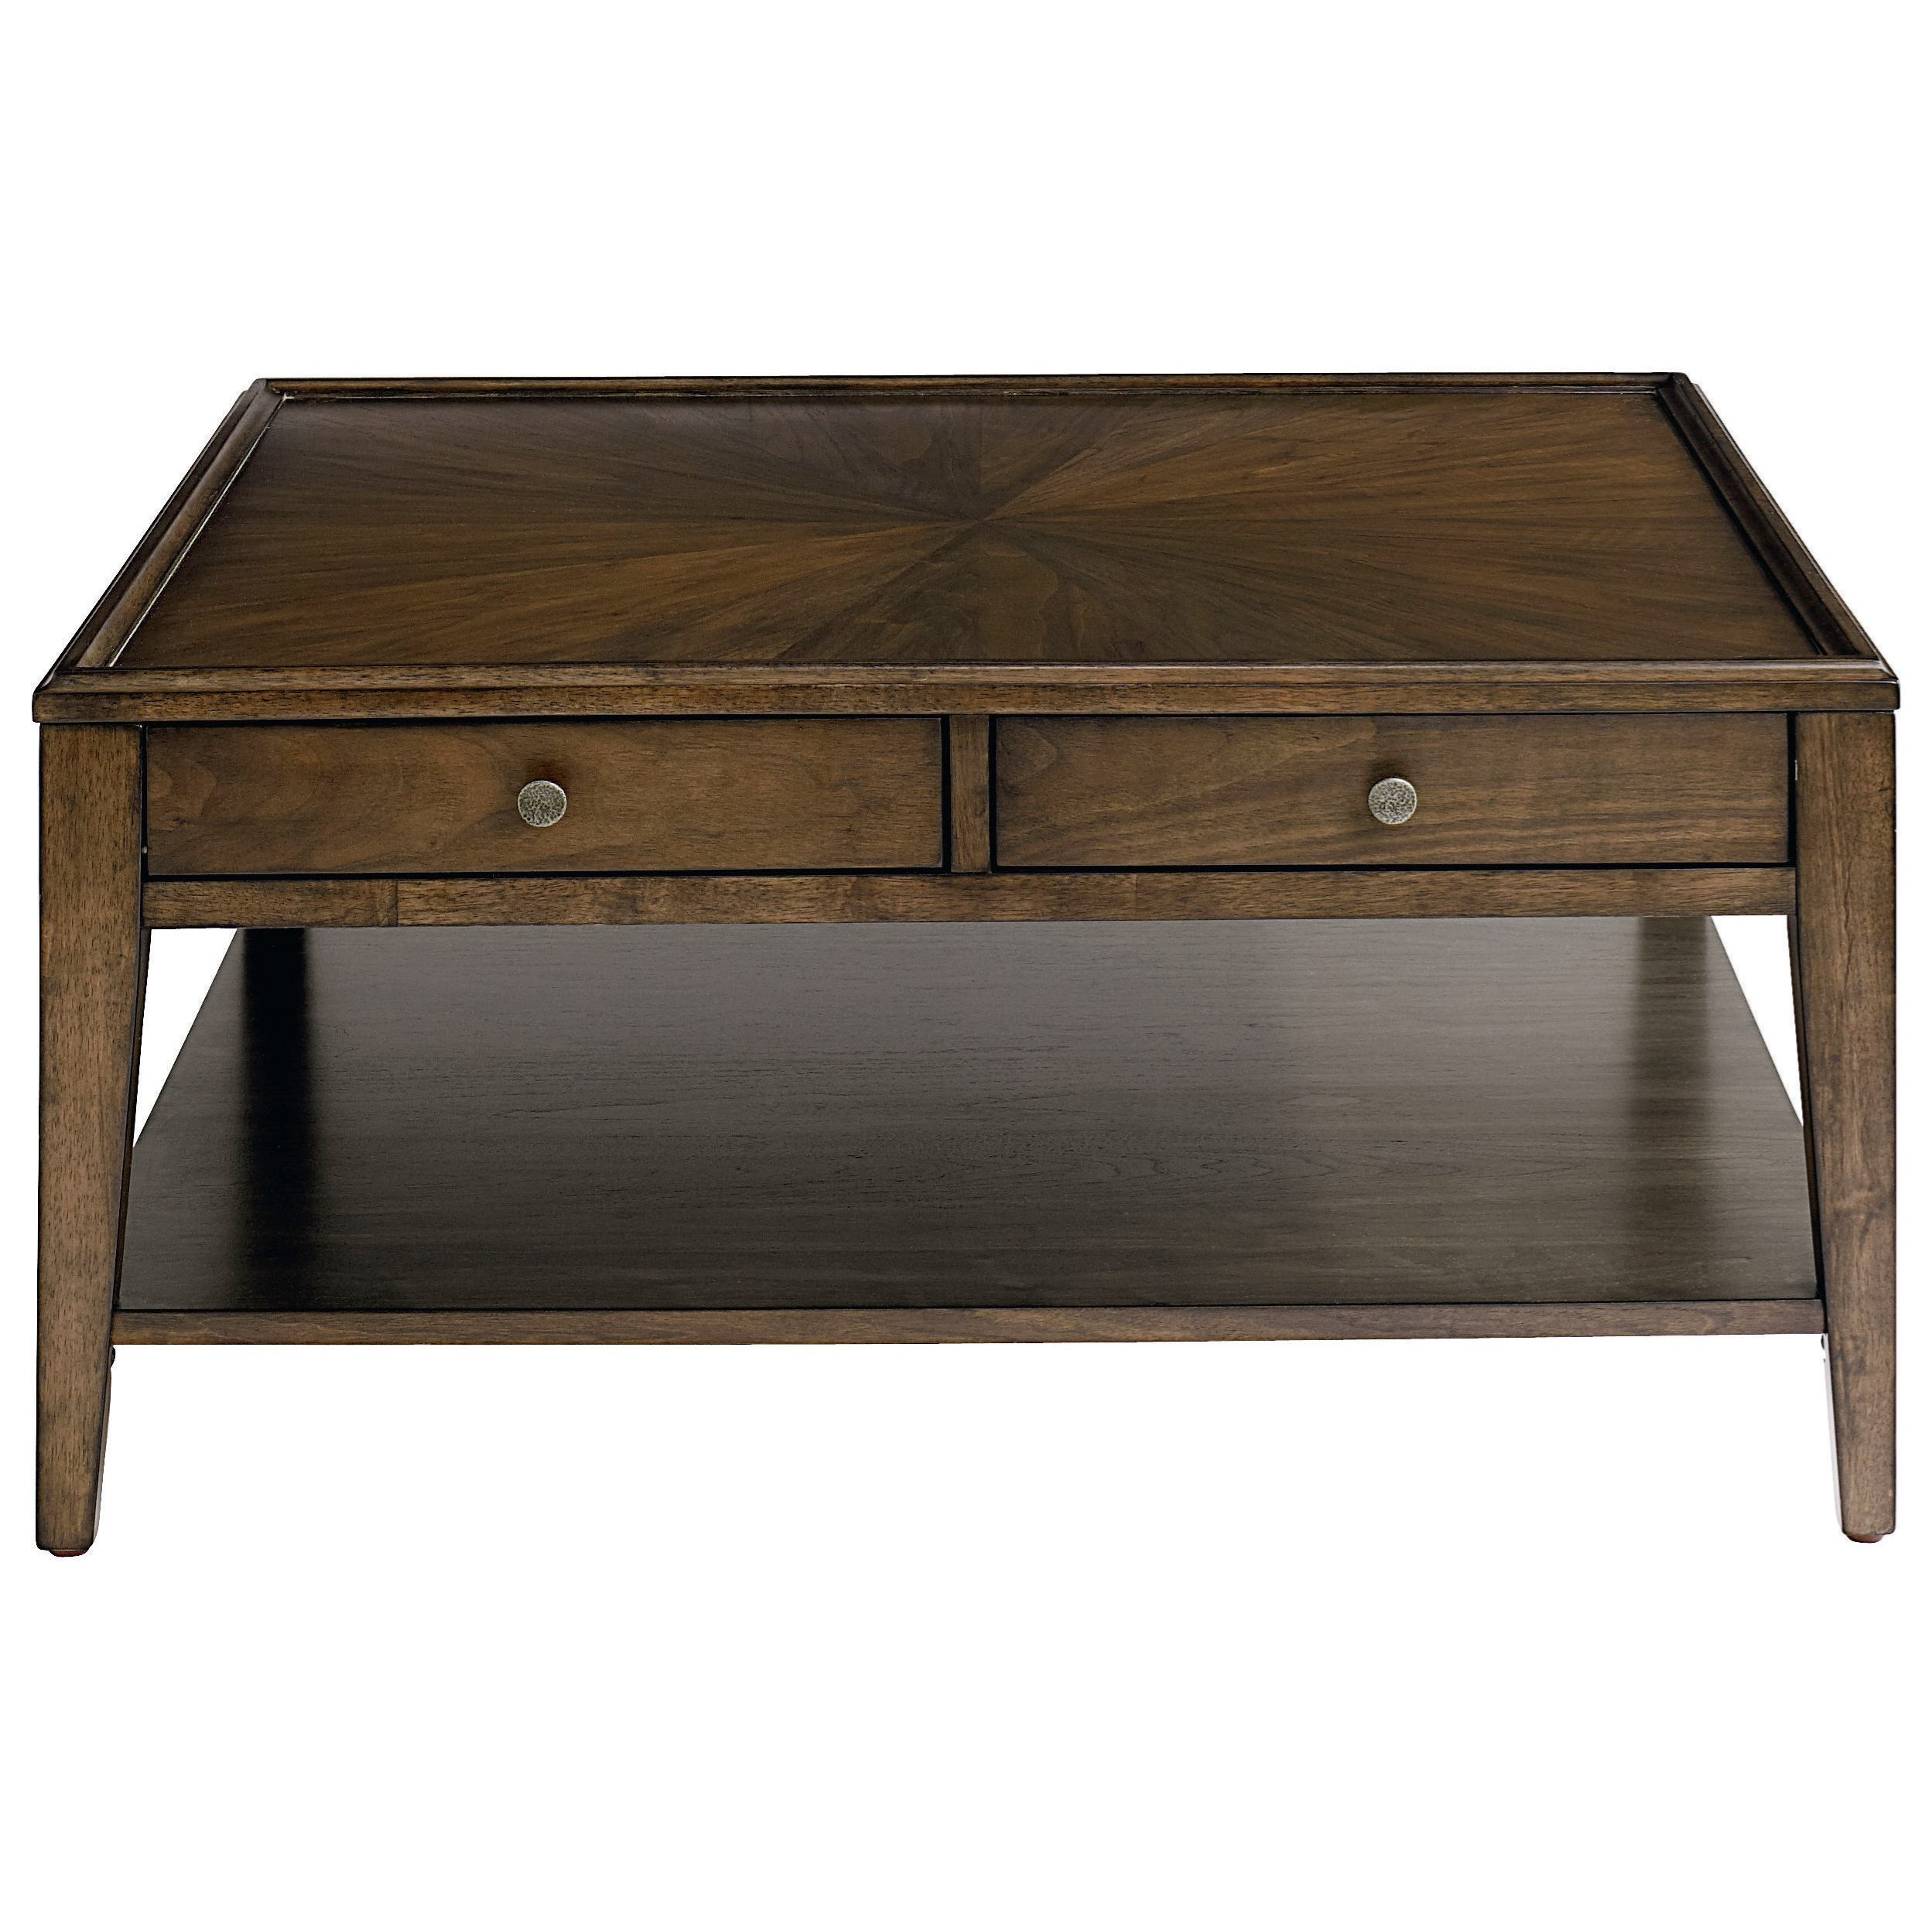 Palisades Square Cocktail Table by Bassett at VanDrie Home Furnishings